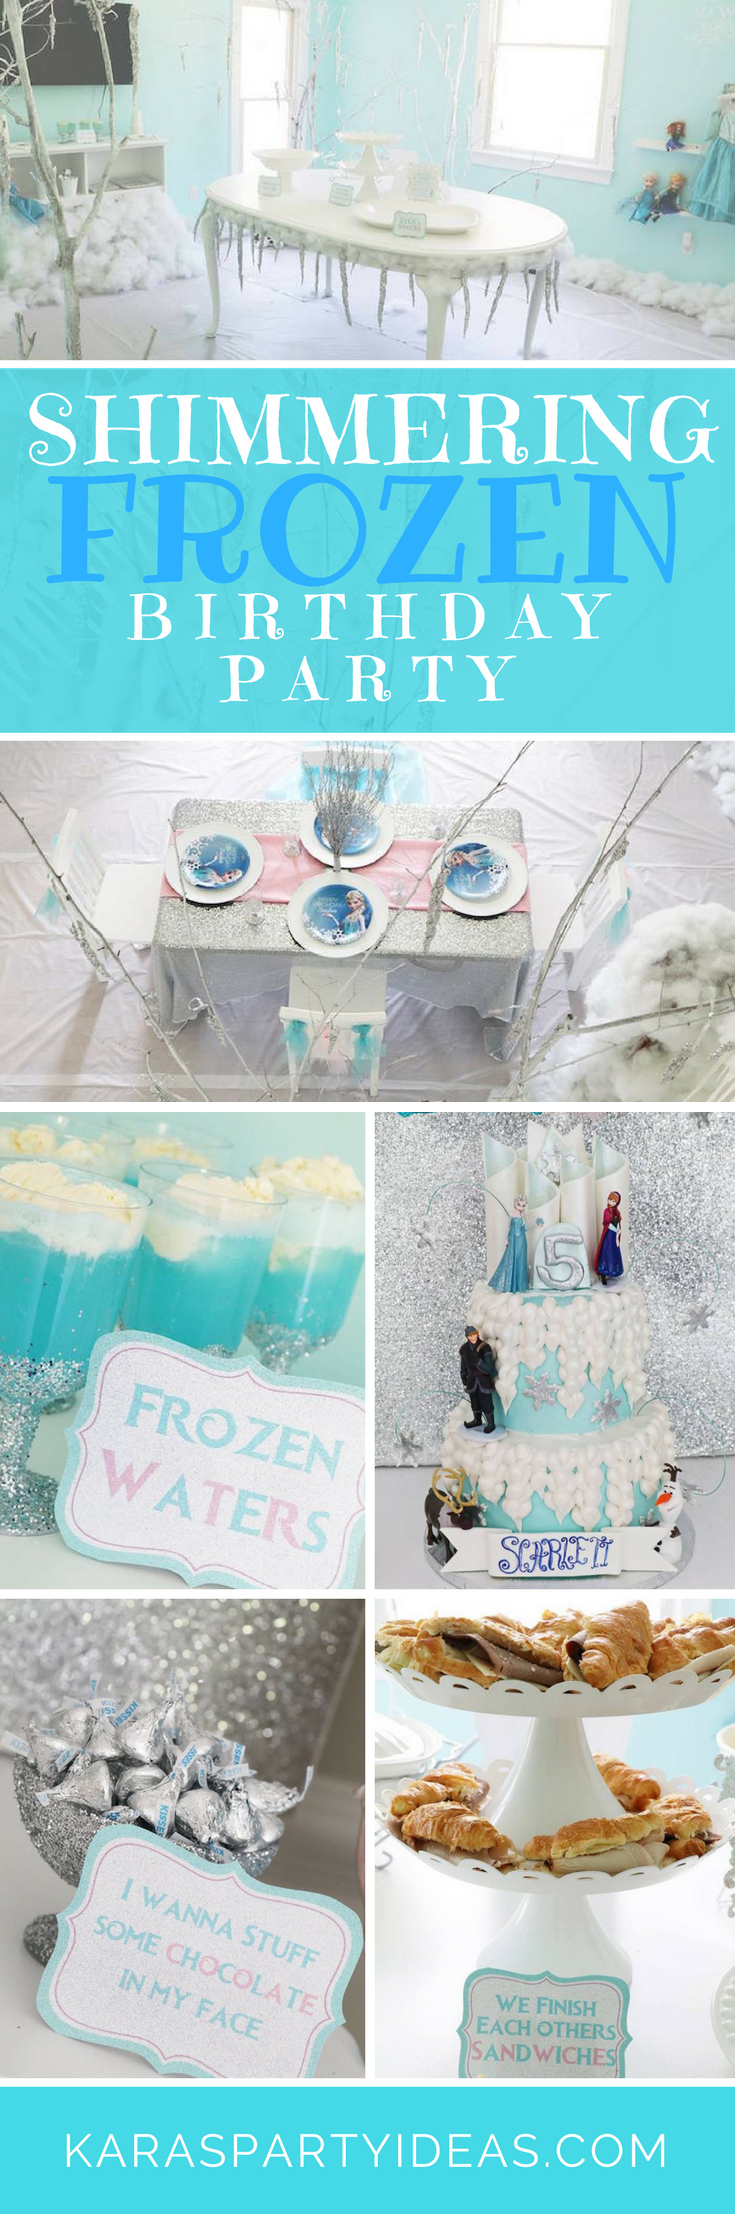 Shimmering Frozen Birthday Party via Kara's Party Ideas - KarasPartyIdeas.com